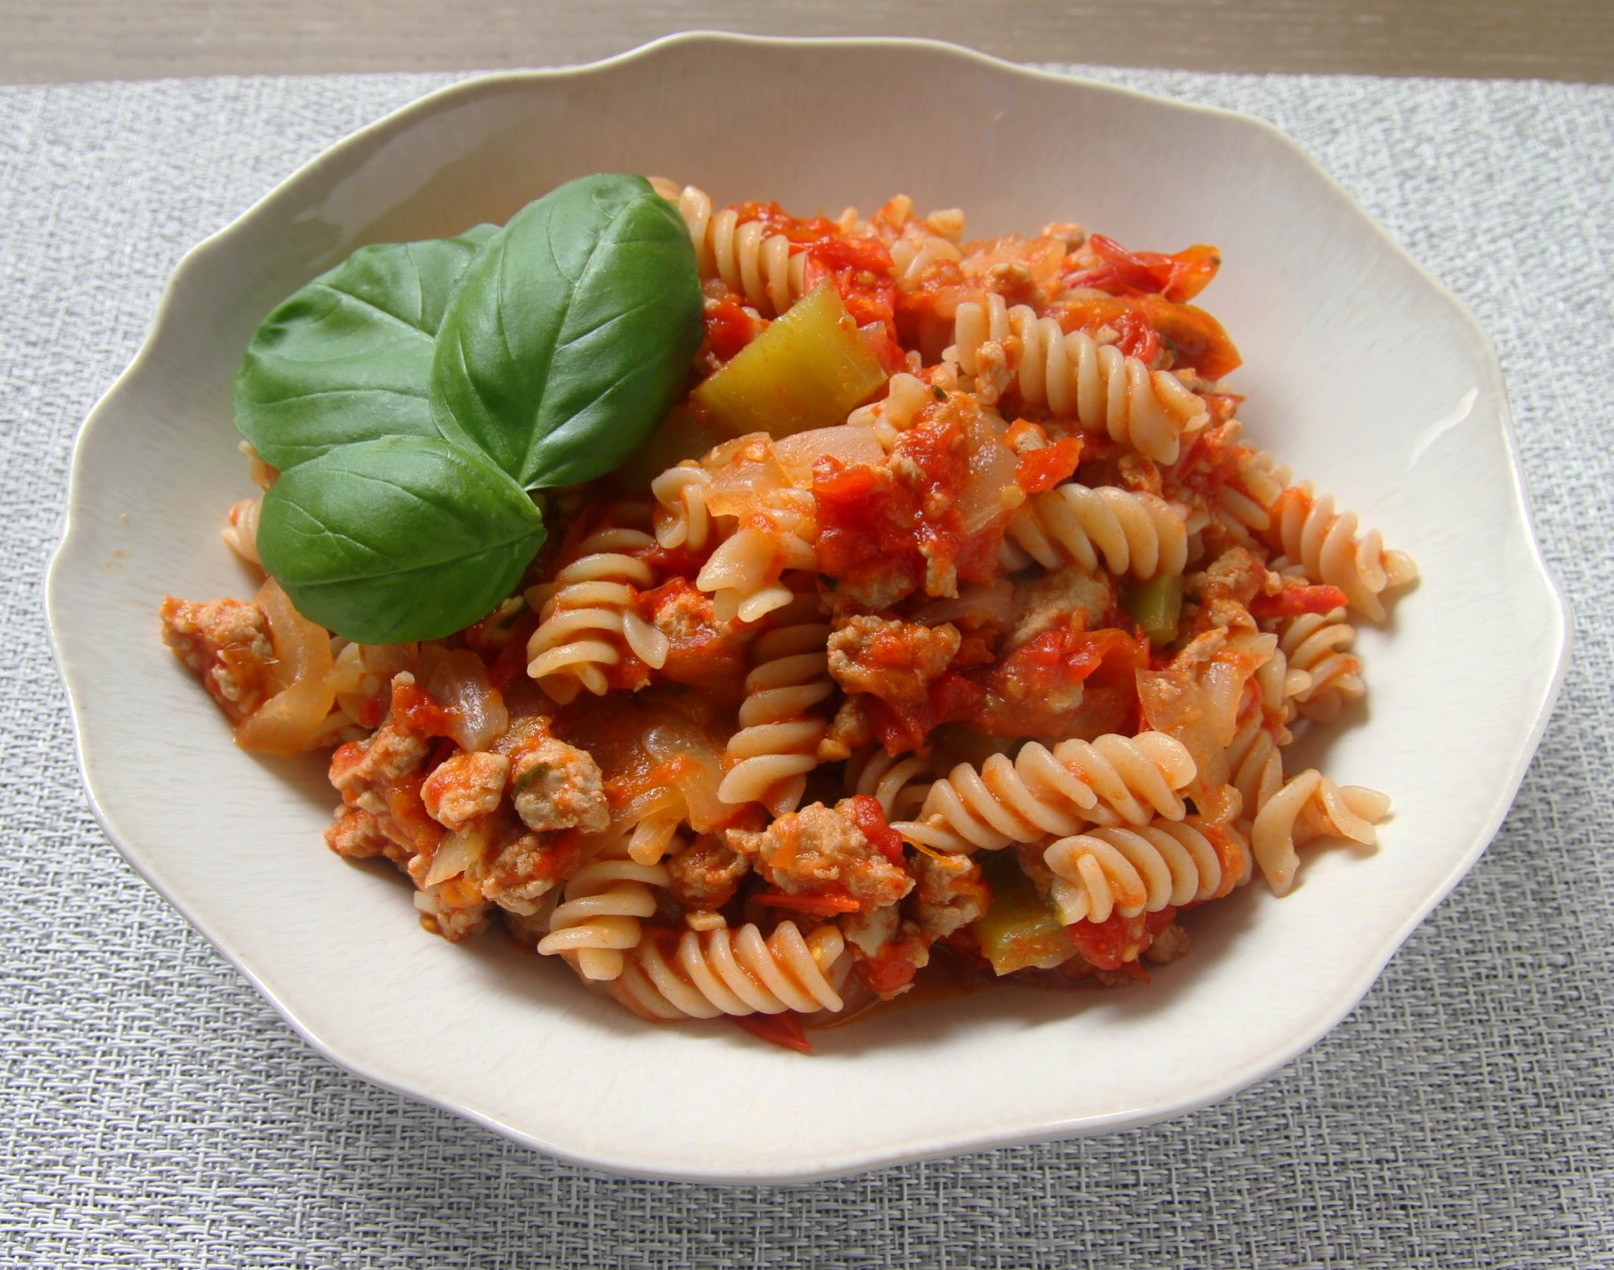 Turkey meat sauce with Holland peppers and onions mixed with GF fusilli pasta.